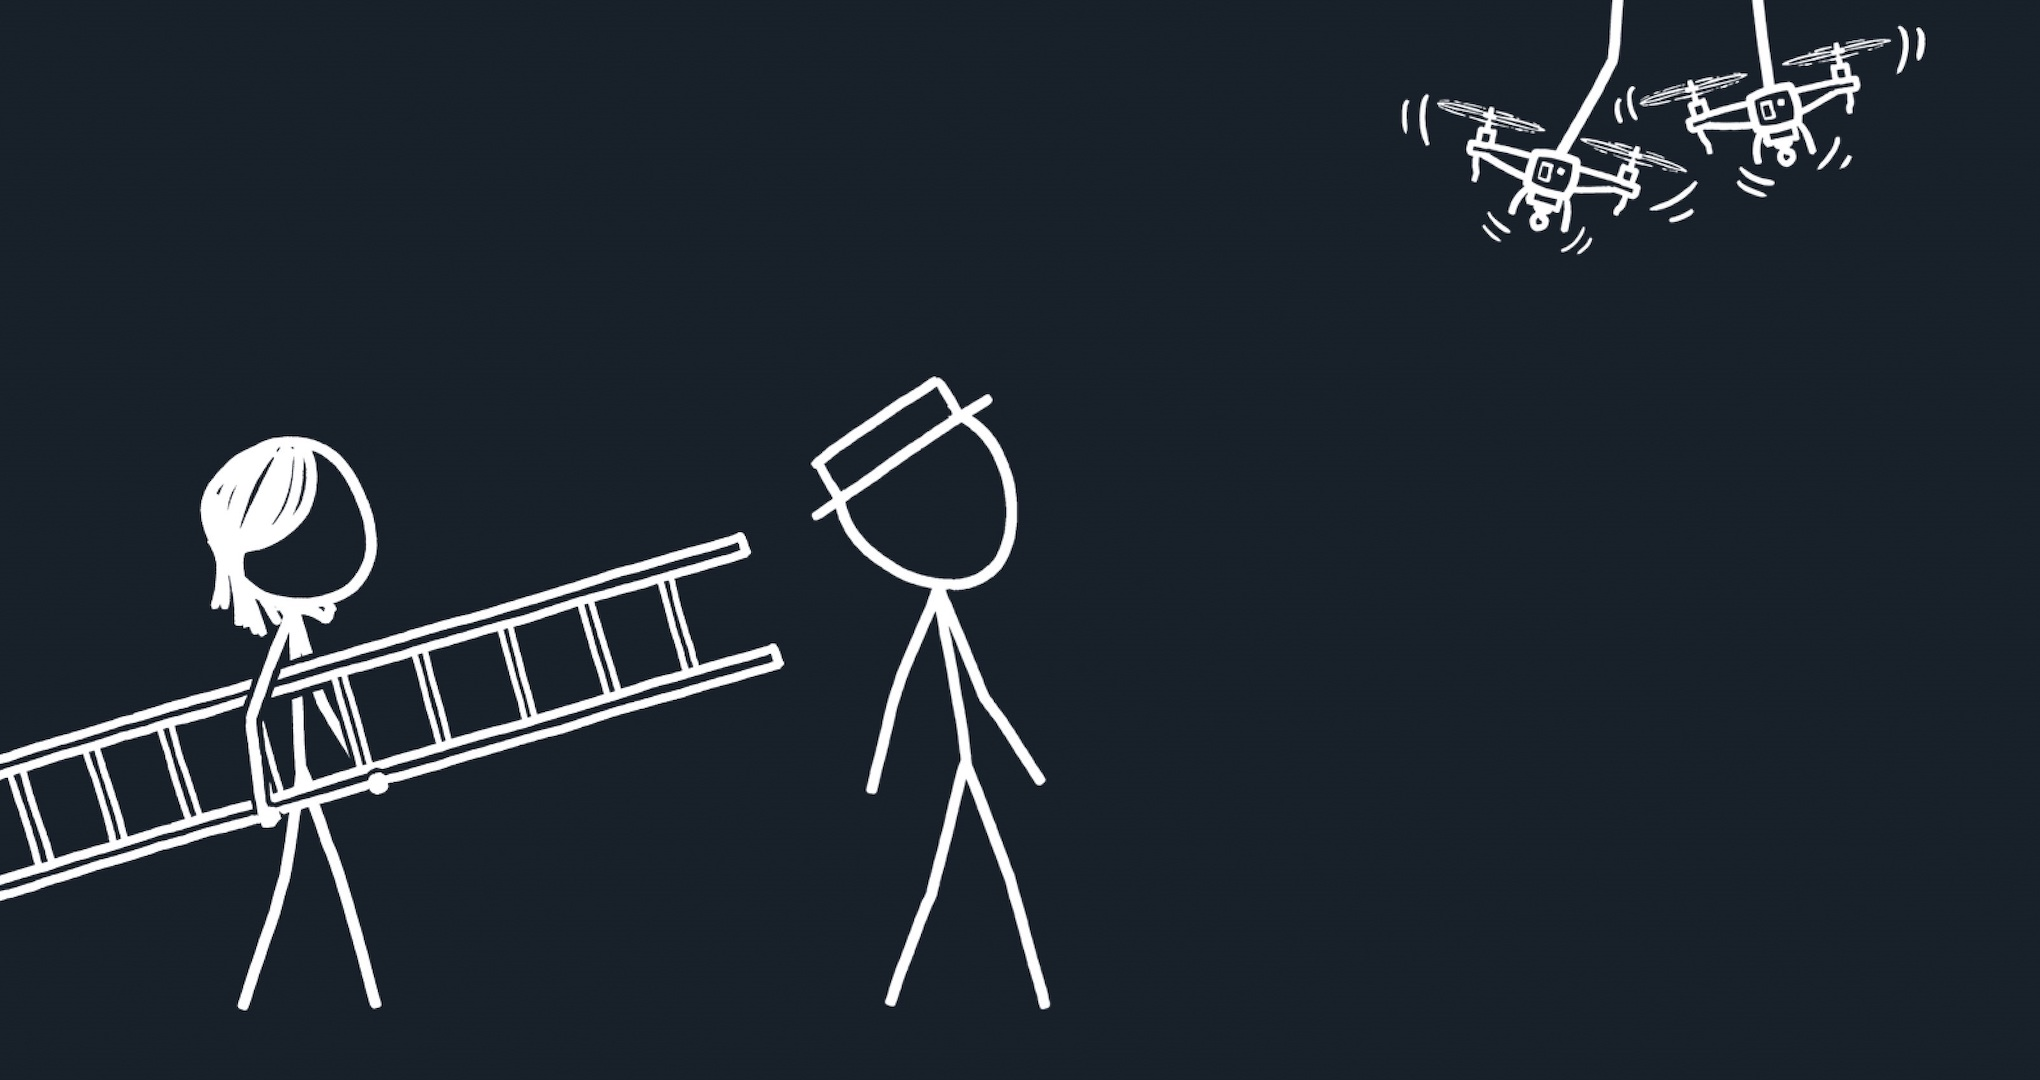 Two stick figures, male and female, watch a third attempt to change a lightbulb. The third is hovering, with one foot each on a helicopter drone.